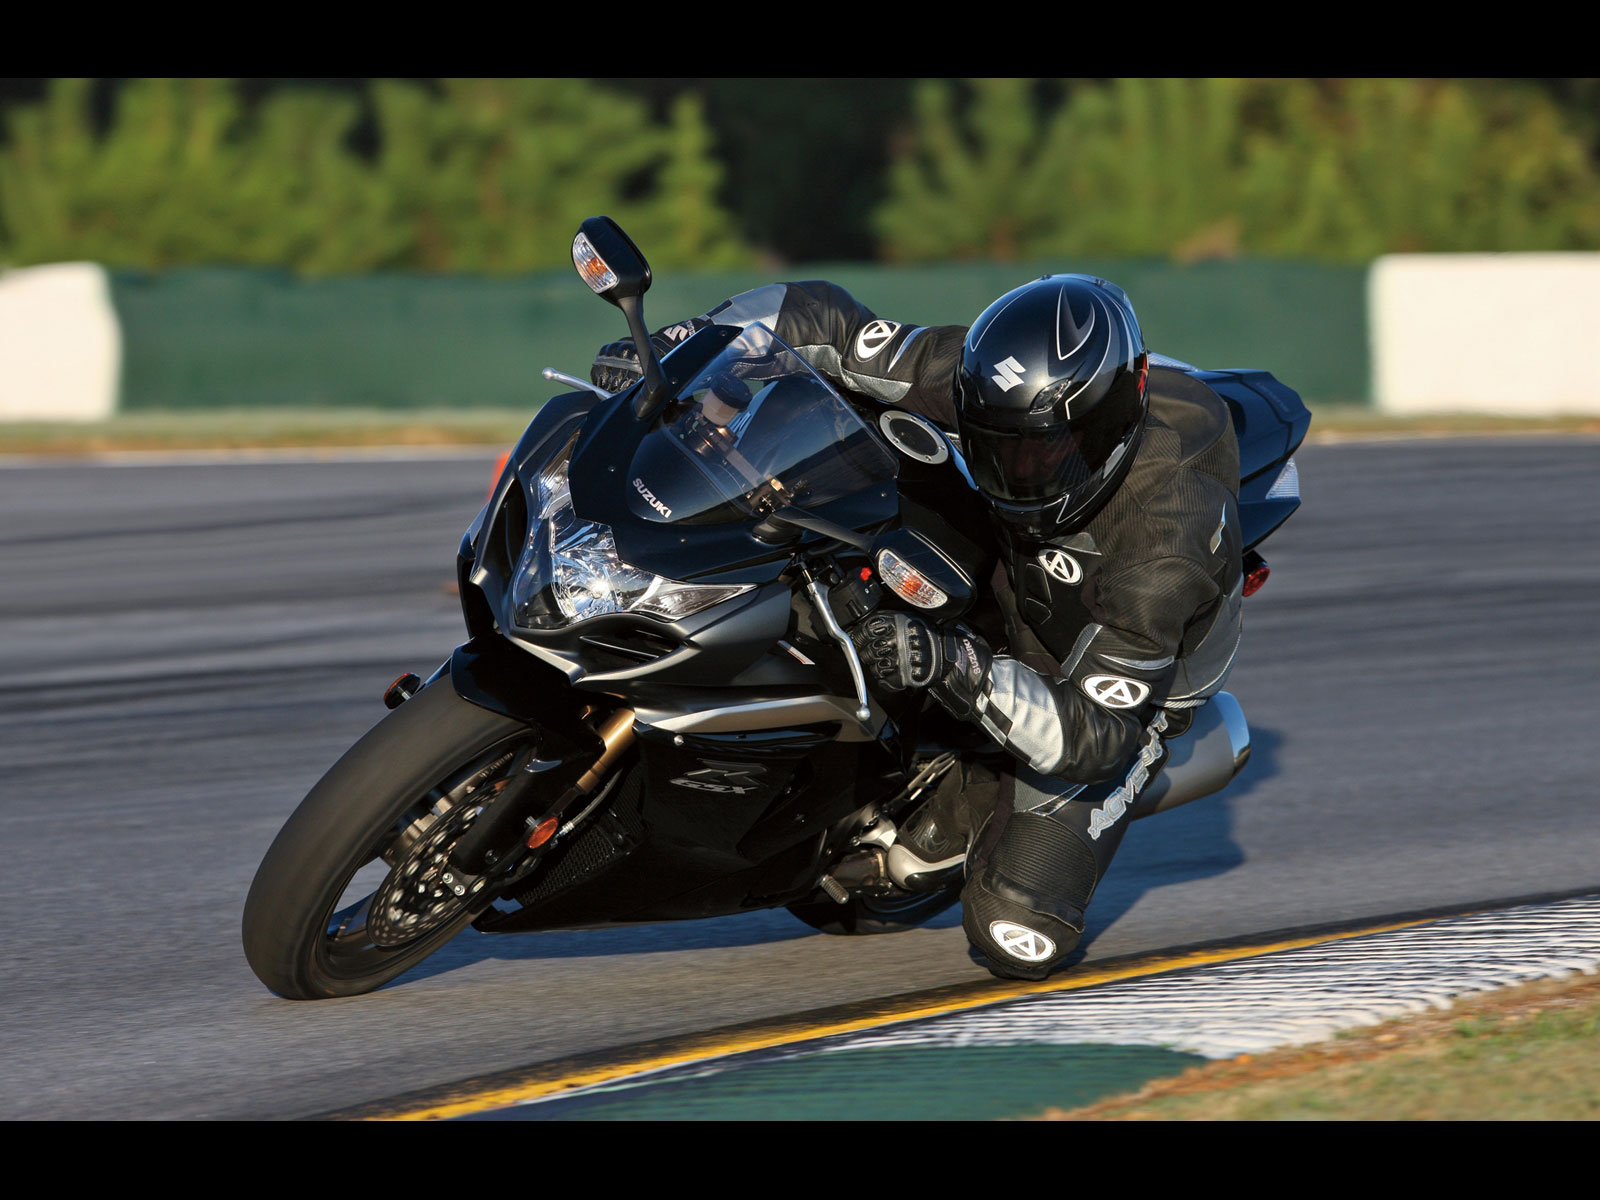 Suzuki gsx r1000 action wallpapers 72 wallpapers u2013 hd wallpapers